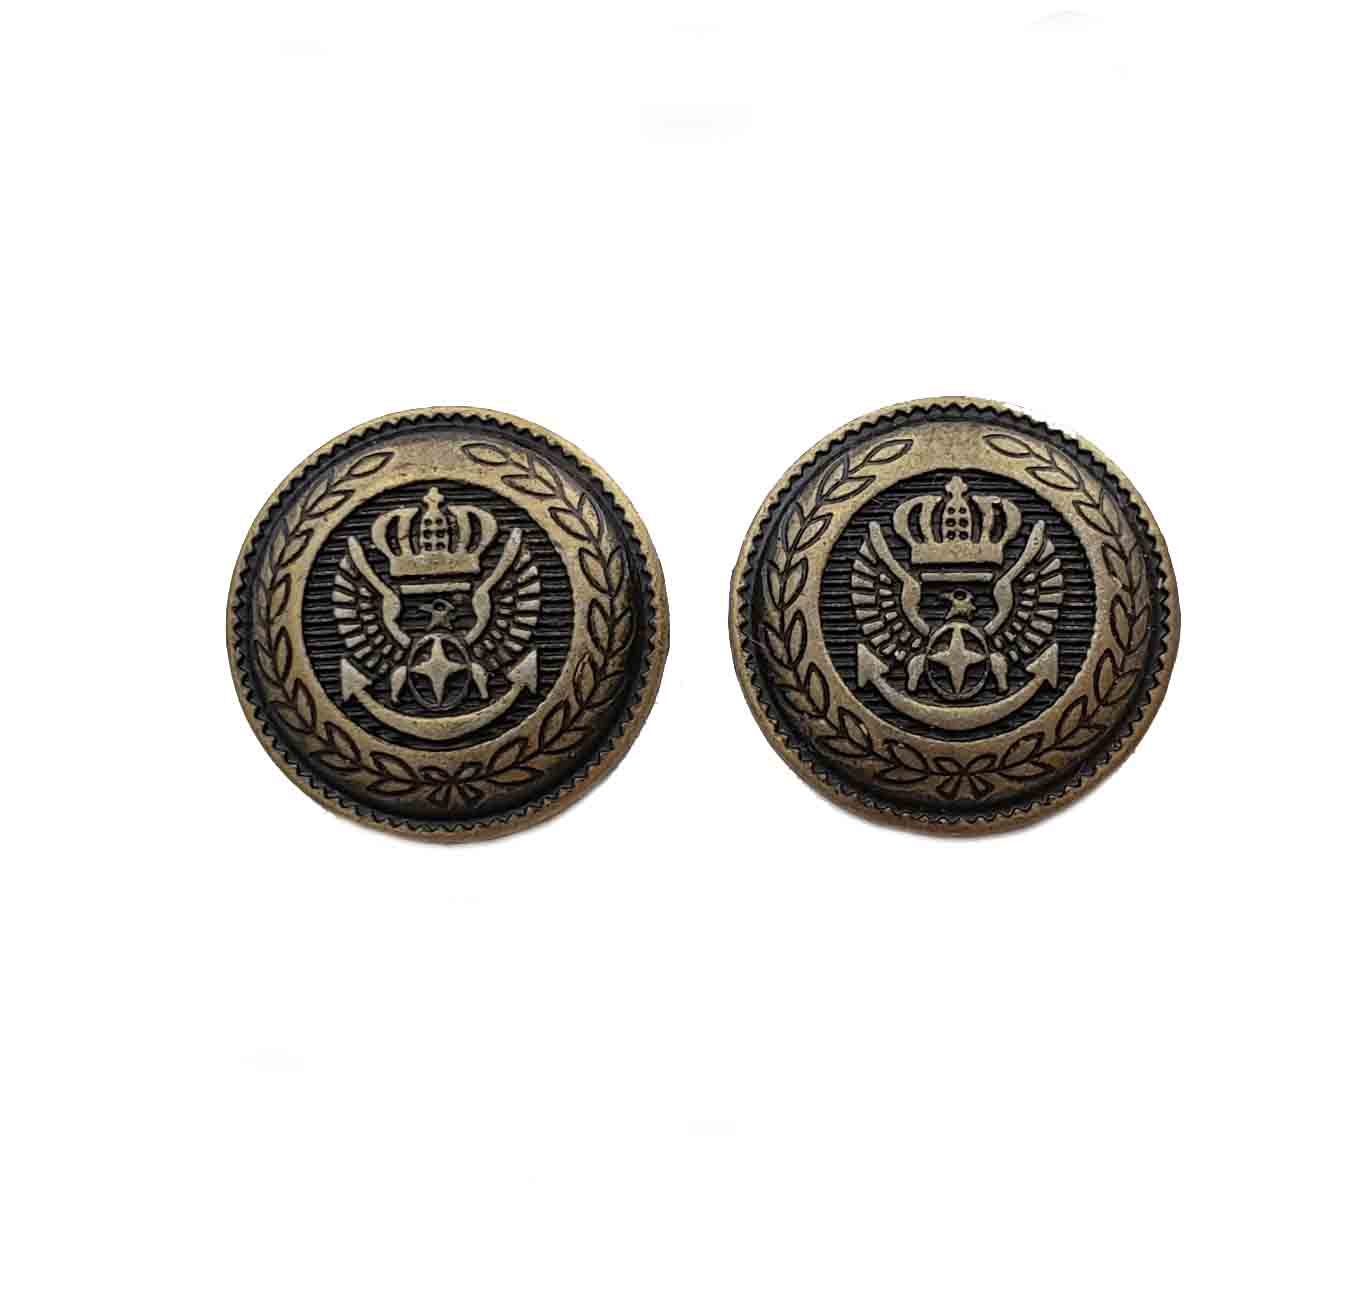 Two New Jos A Bank Blazer Replacement Blazer Buttons Antique Gold Brown Crown Eagle Anchor Men's